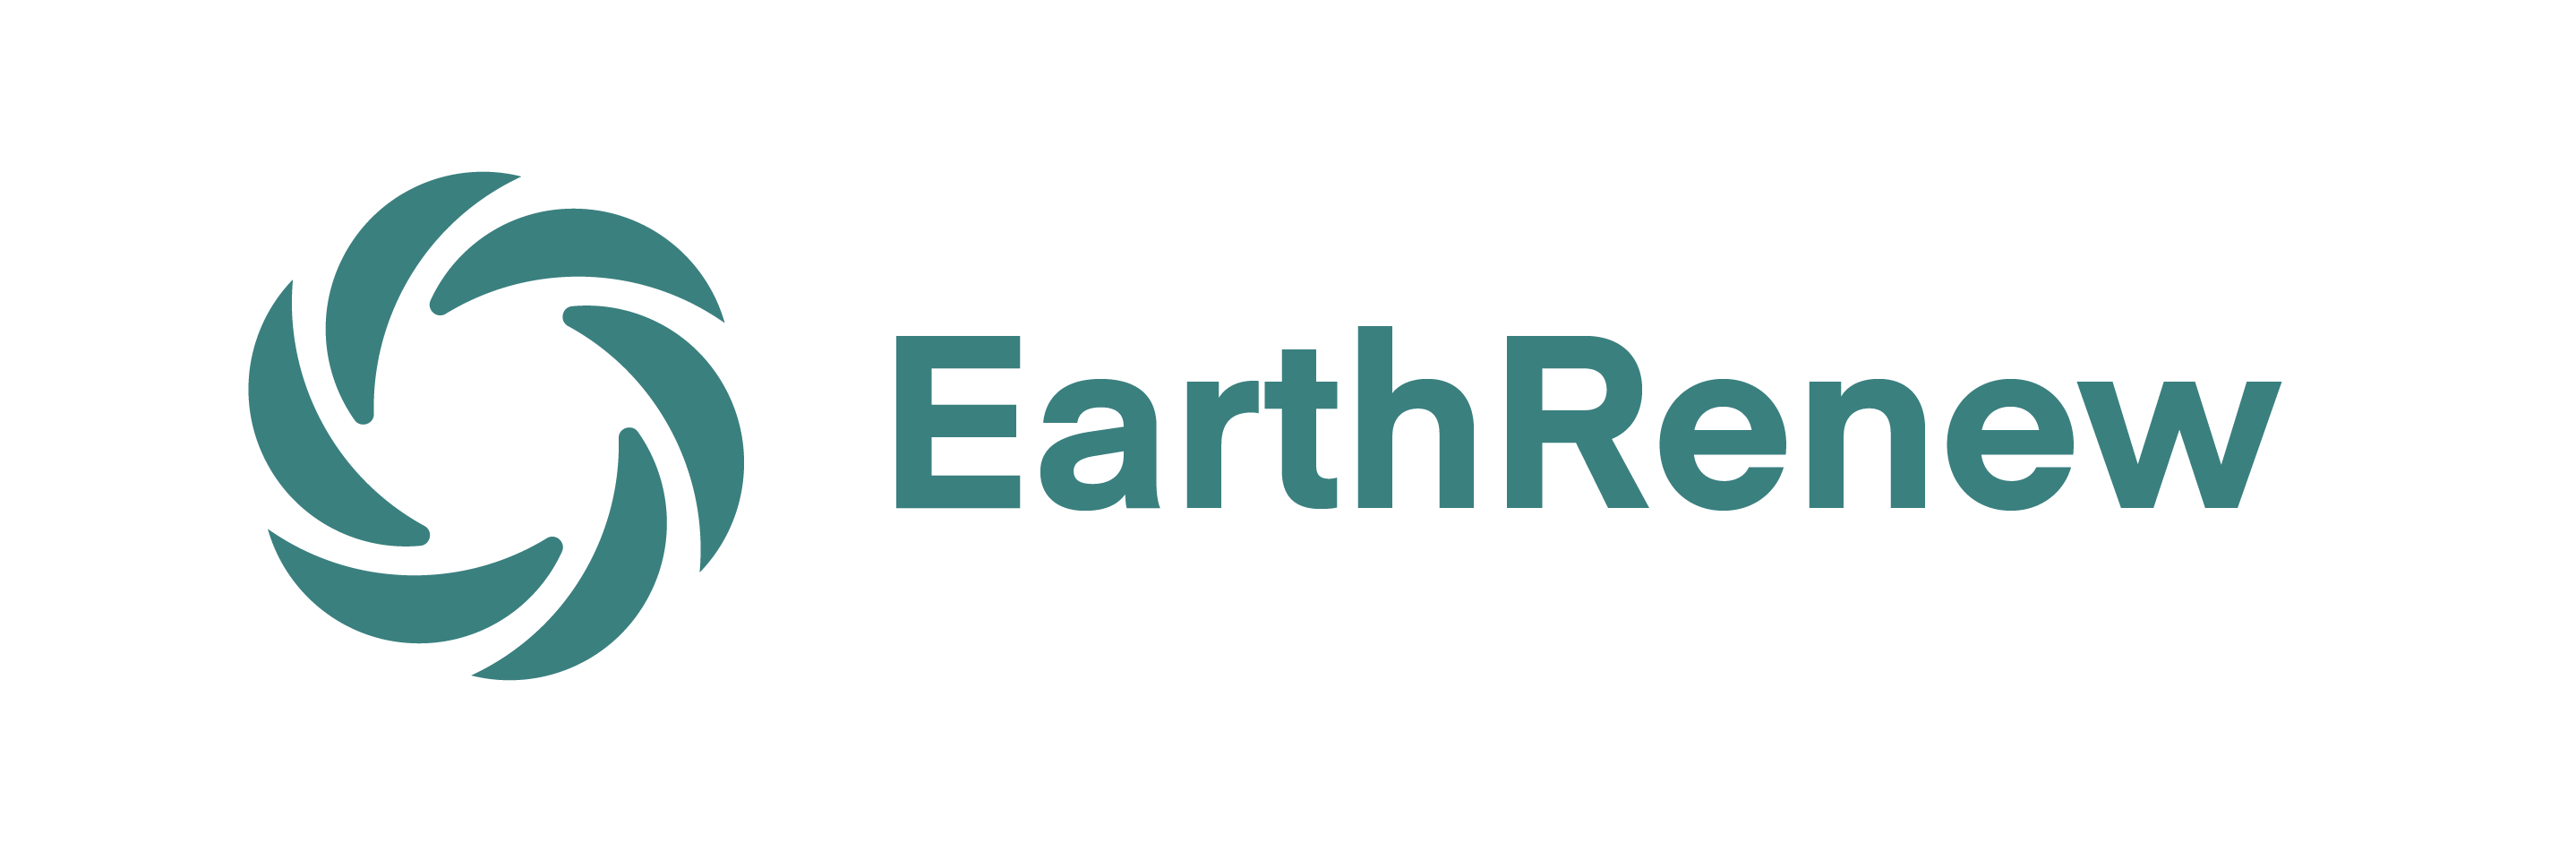 EarthRenew Announces Supply and Reseller Agreements With BiocharNow